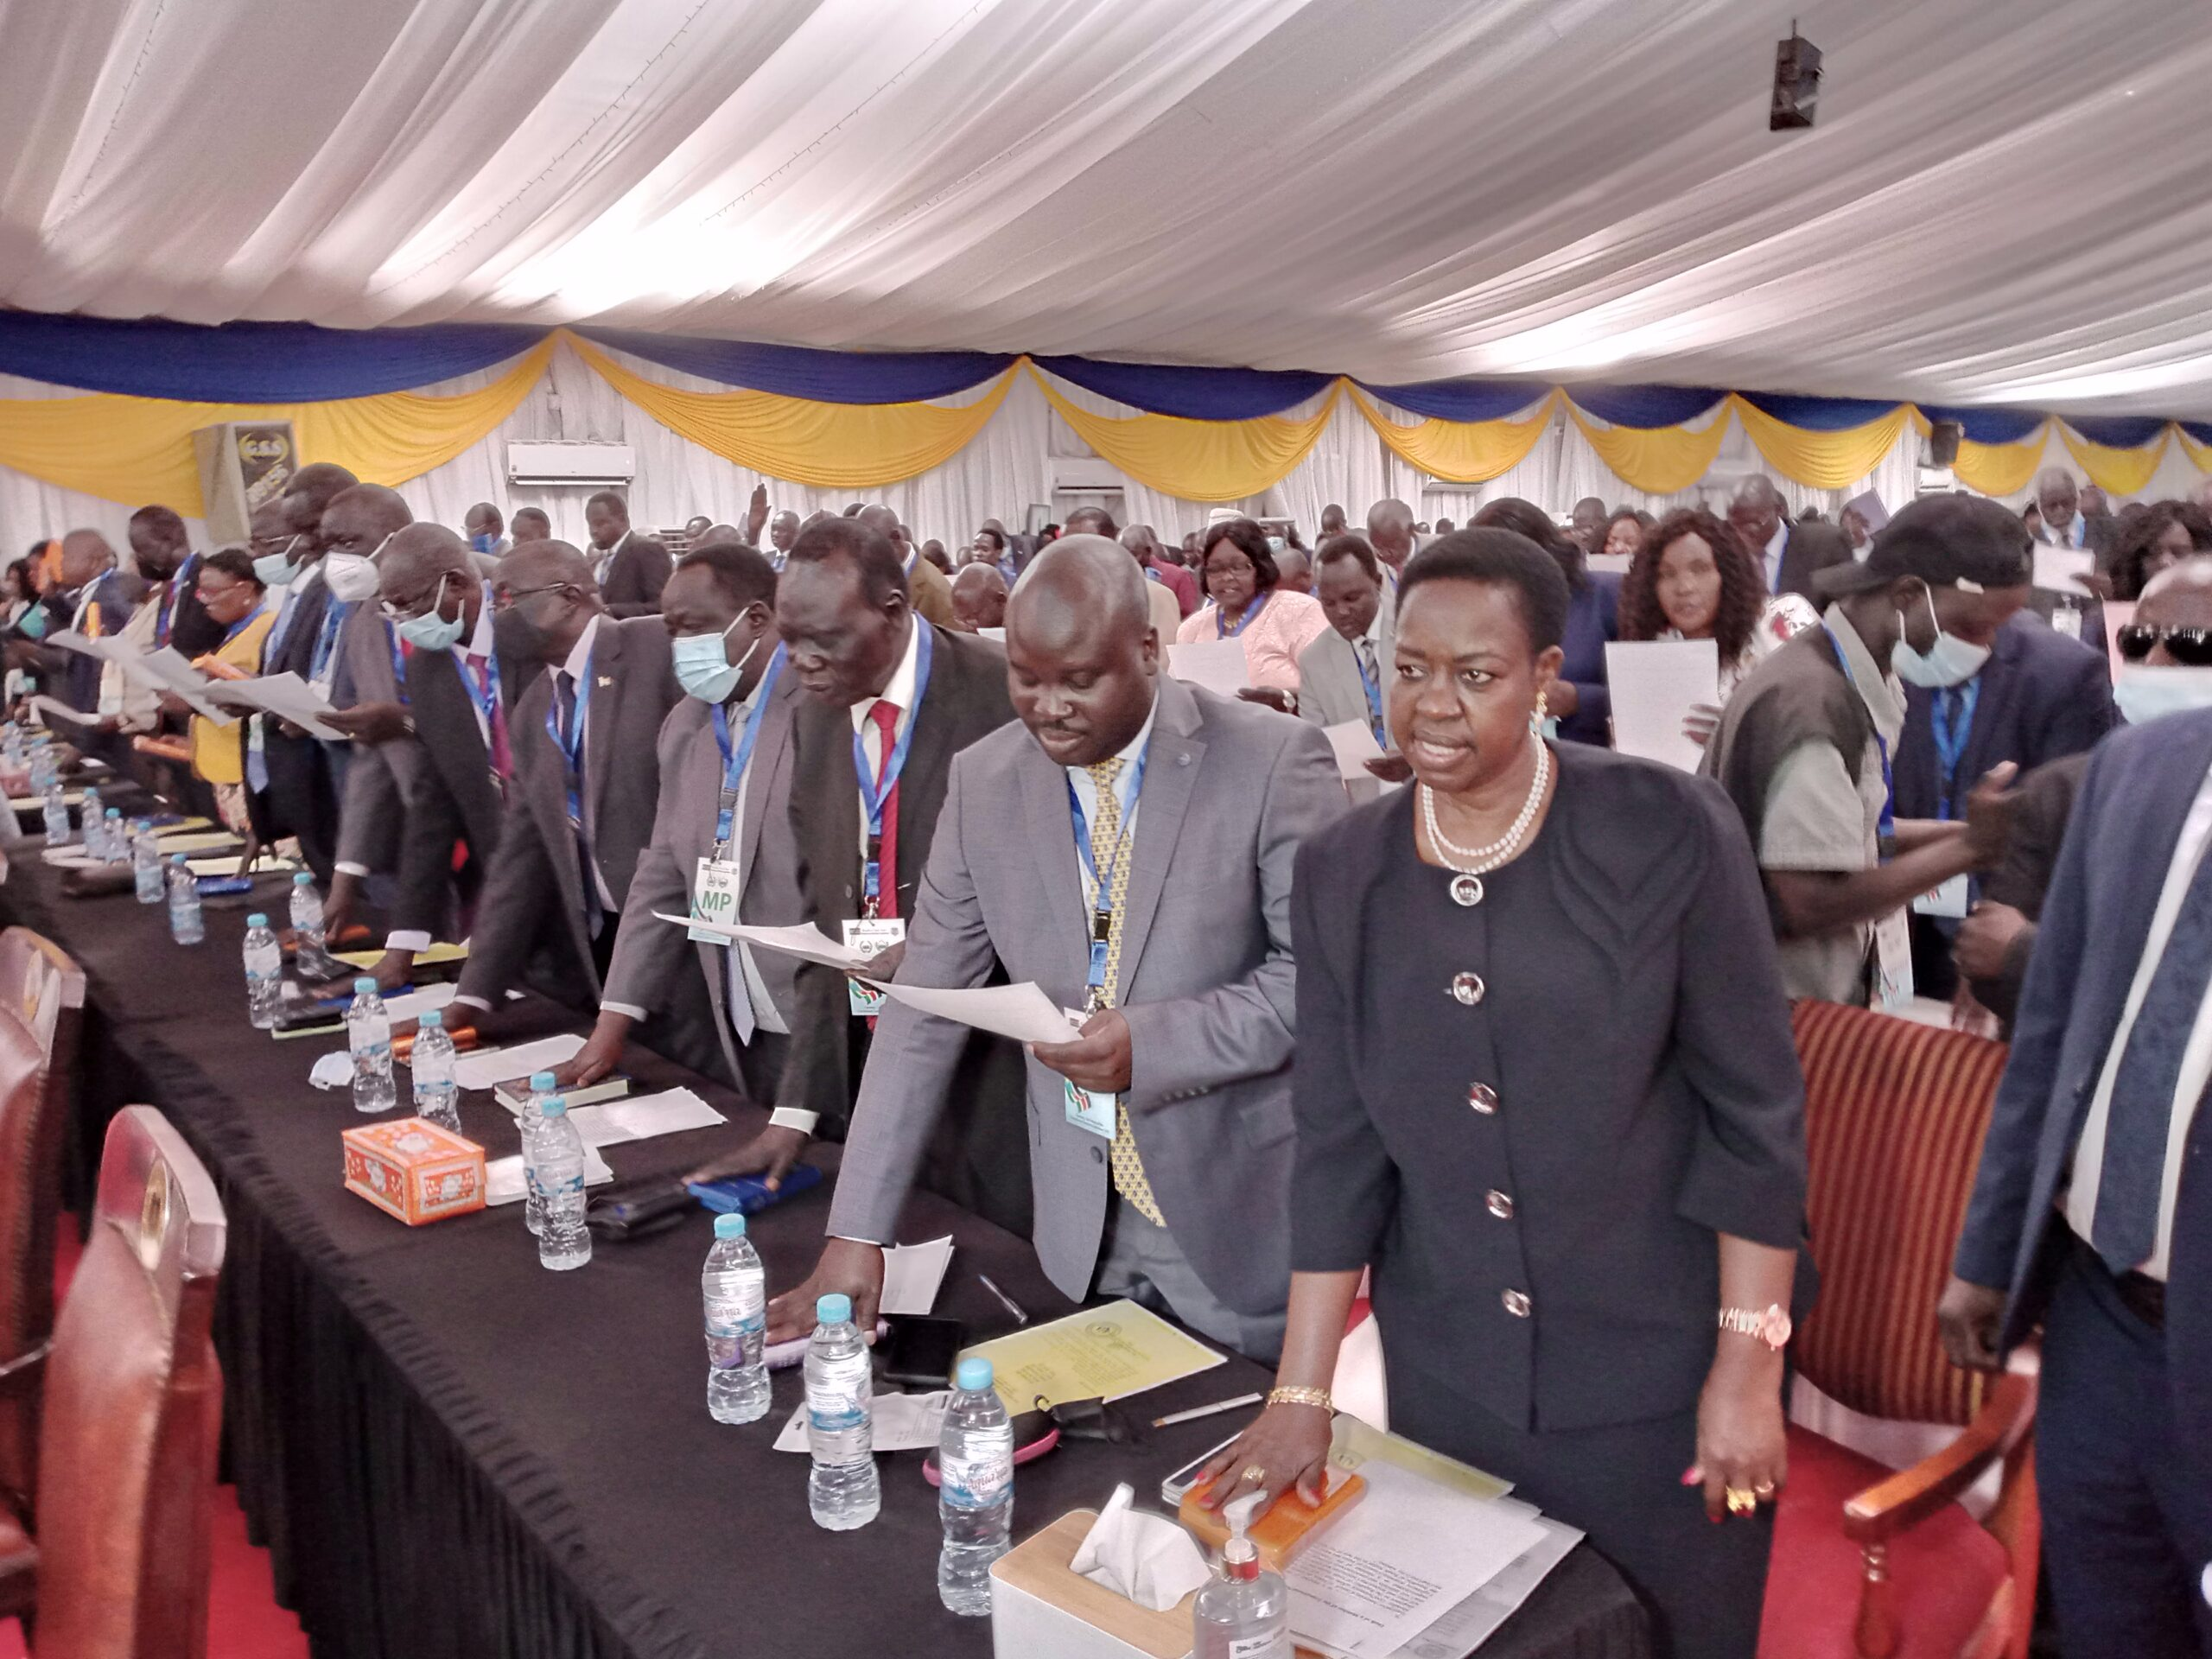 UN mission welcomes swearing-in of South Sudan parliament